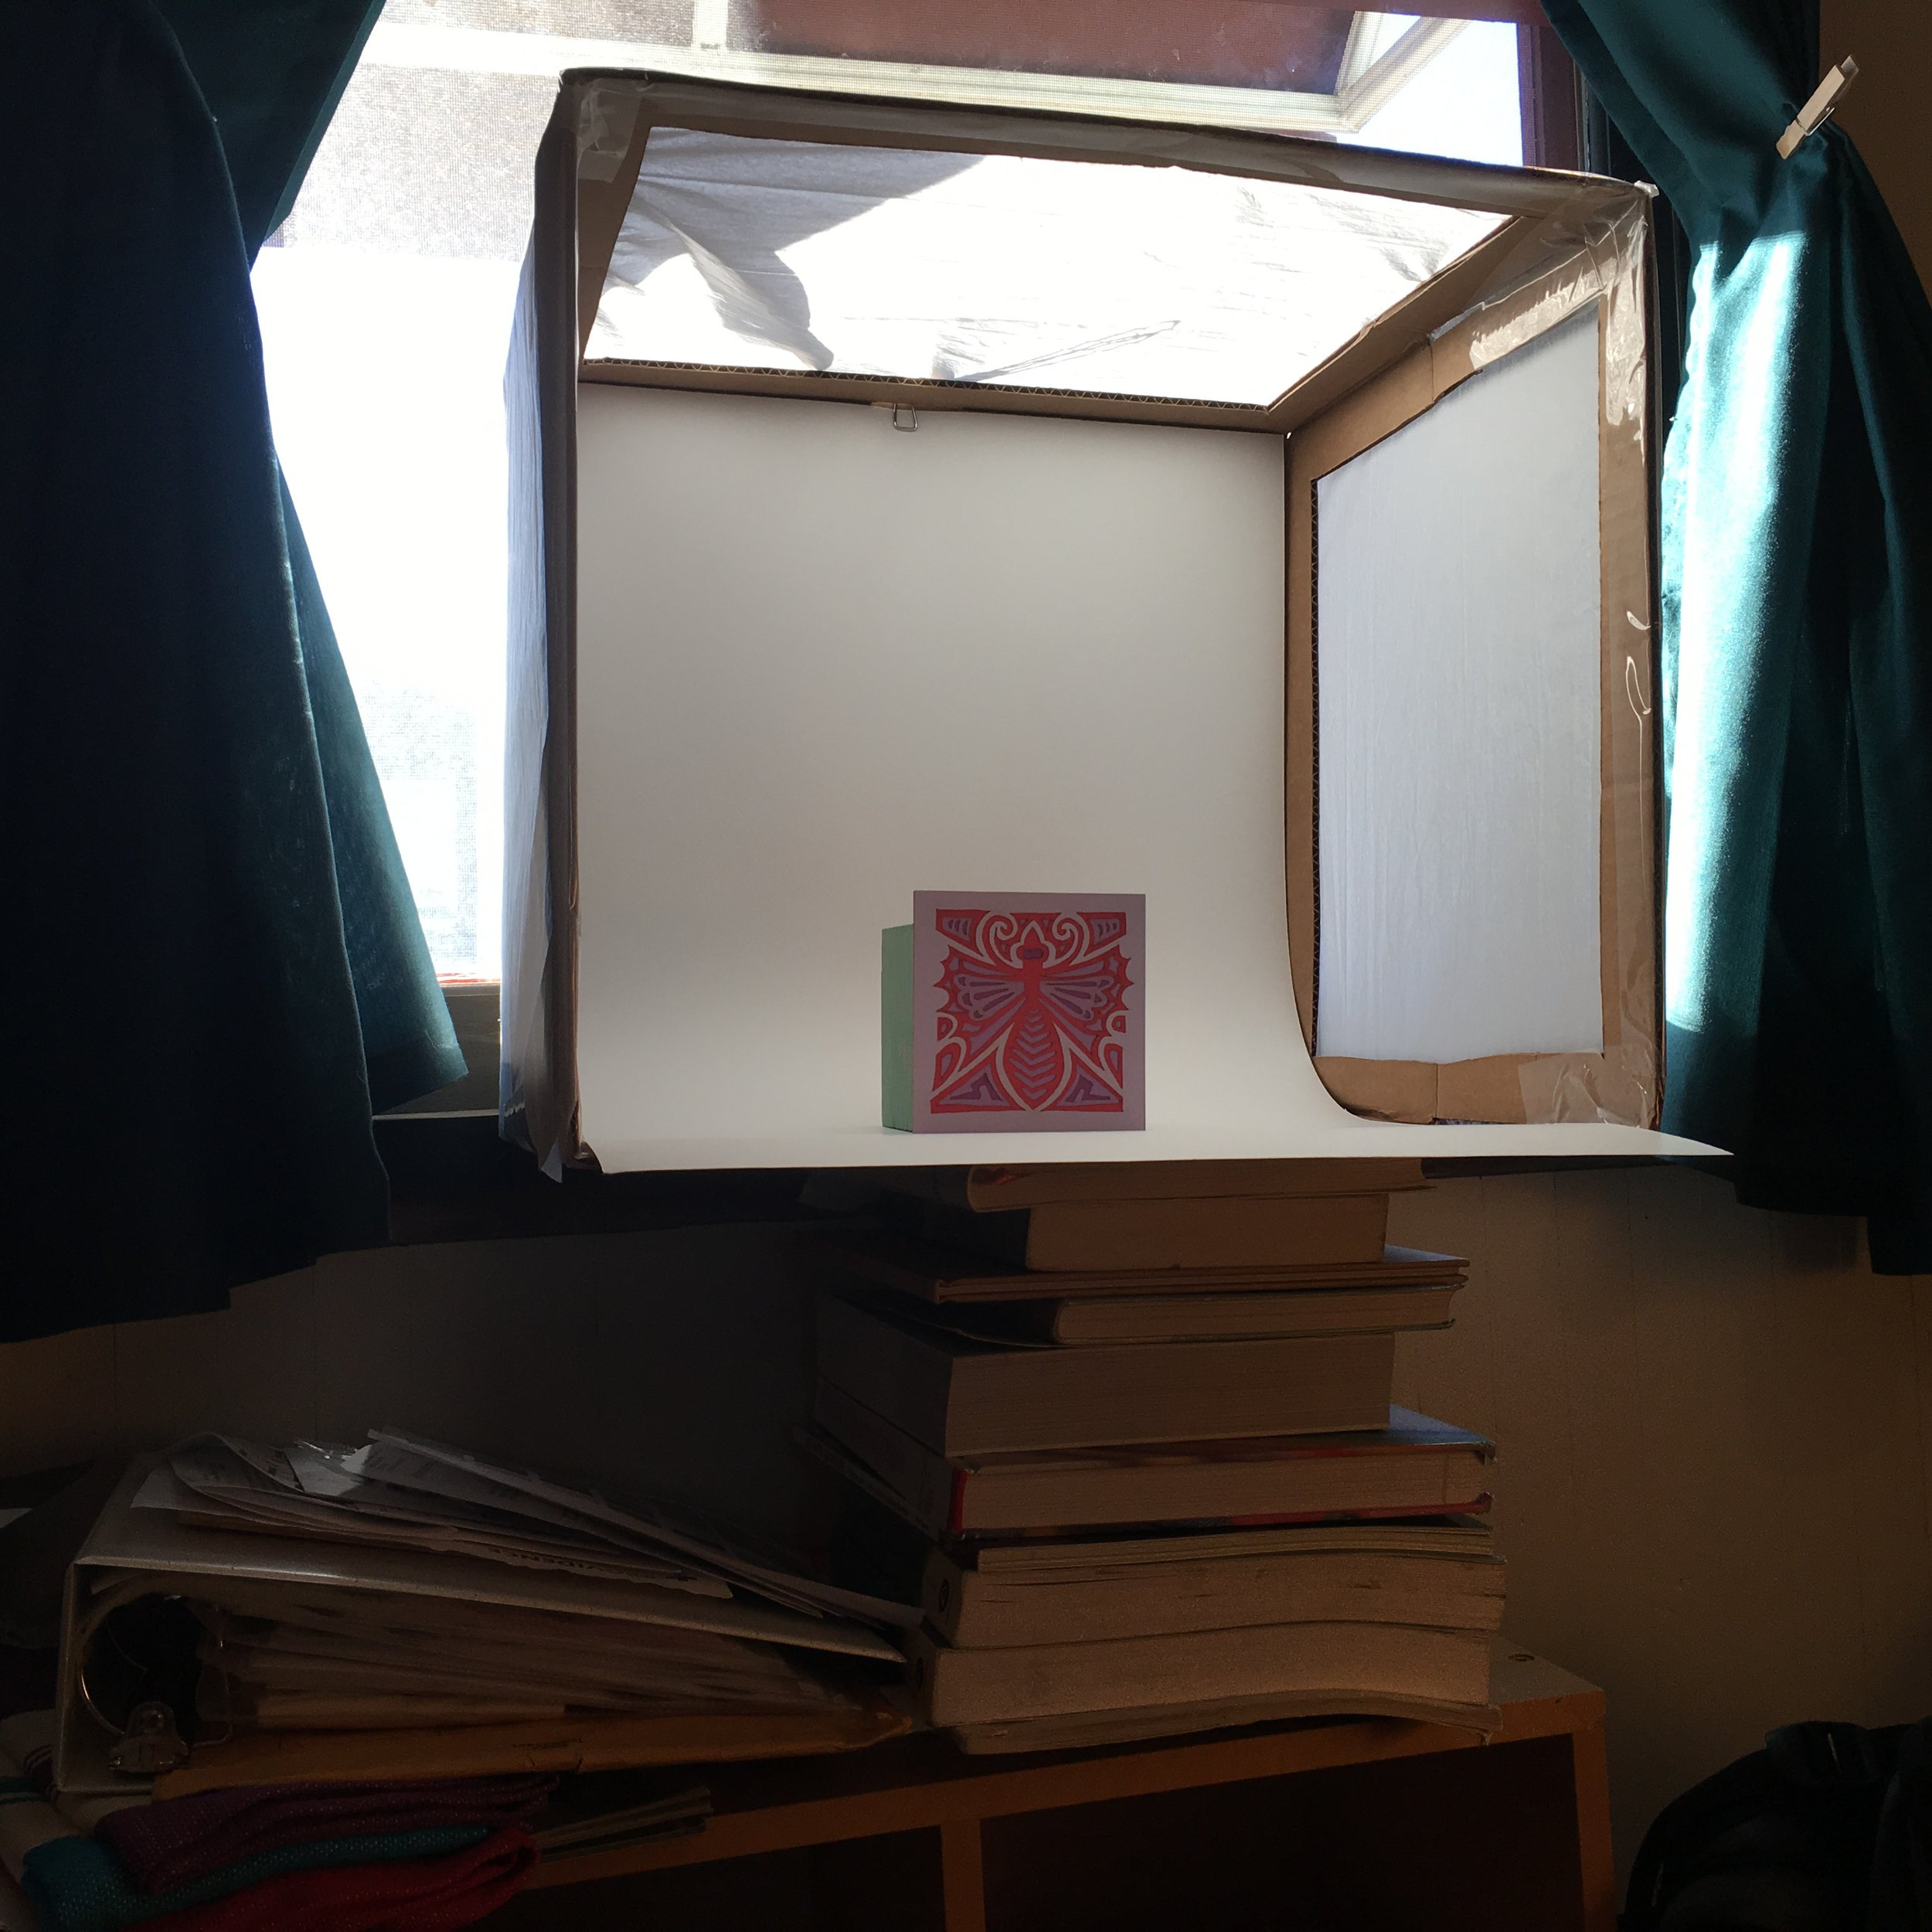 I used about 10 books to get it to just the right height for the tripod and to be situated in the window so I could use natural light. I am grateful that it was a sunny day in Portland! I am curious to experiment on cloudy days and with spotlights in the near future.